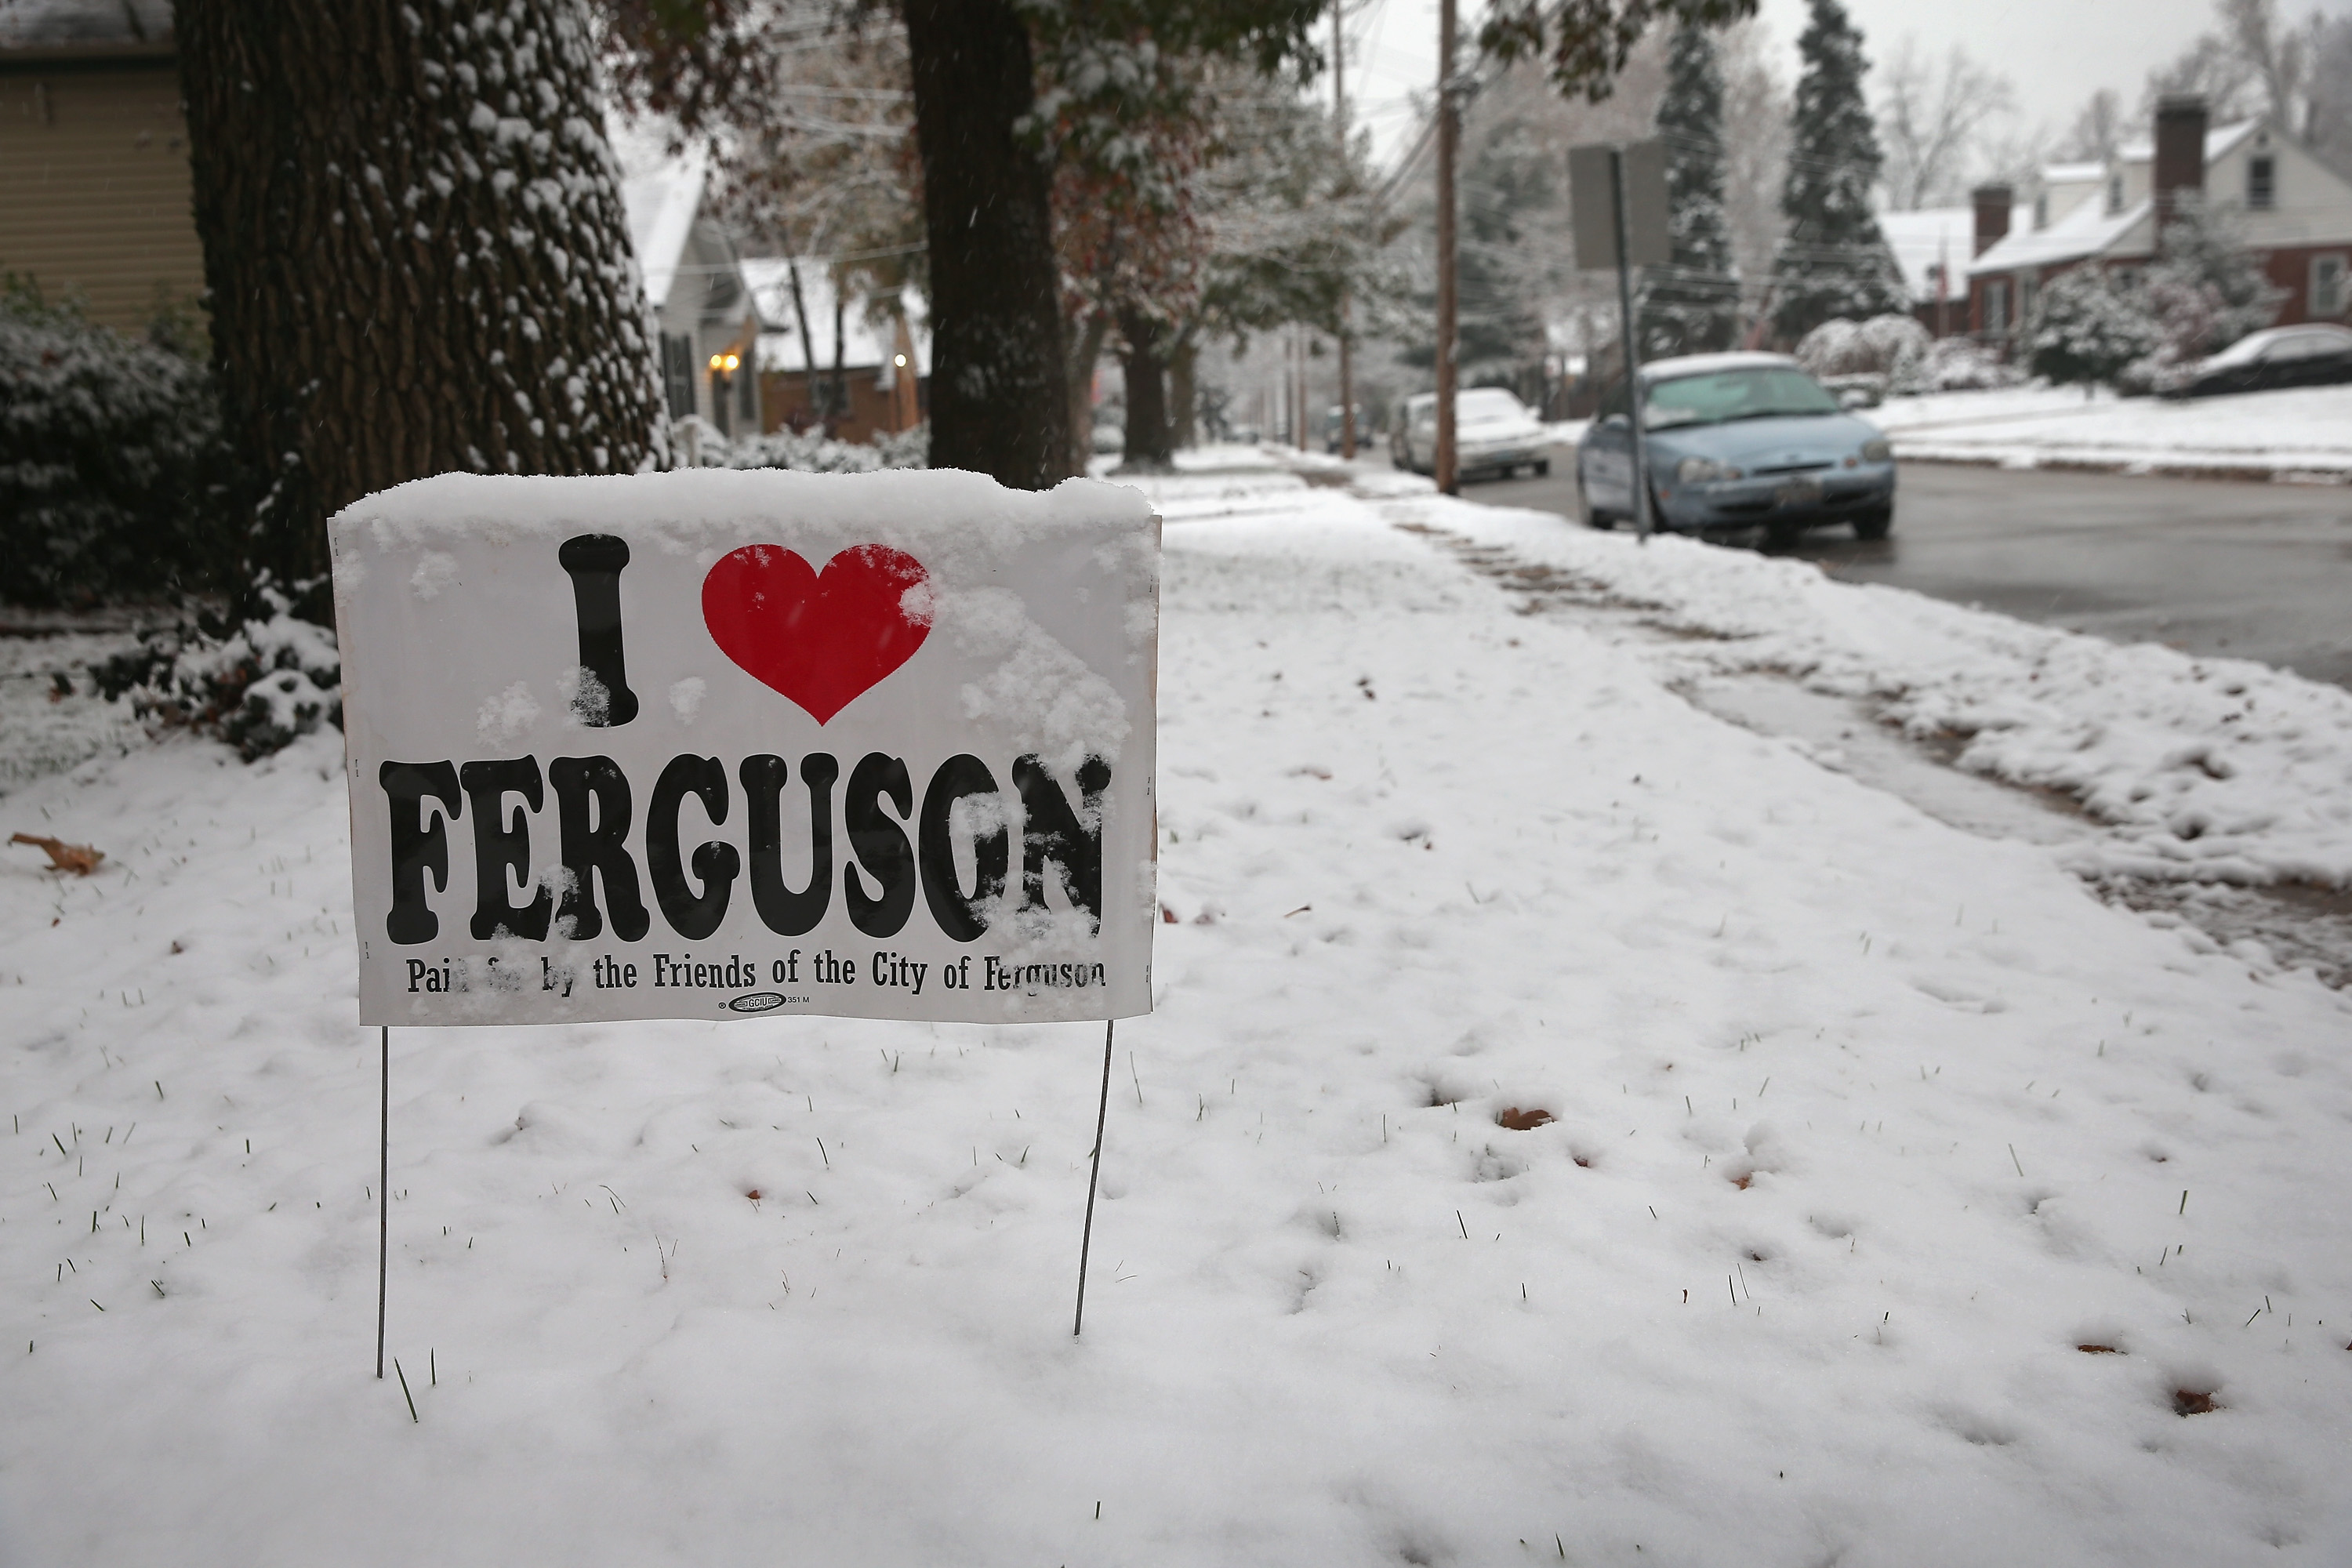 Snow covers a yard sign placed outside a home near the police station on Nov. 16, 2014 in Ferguson, Missouri.